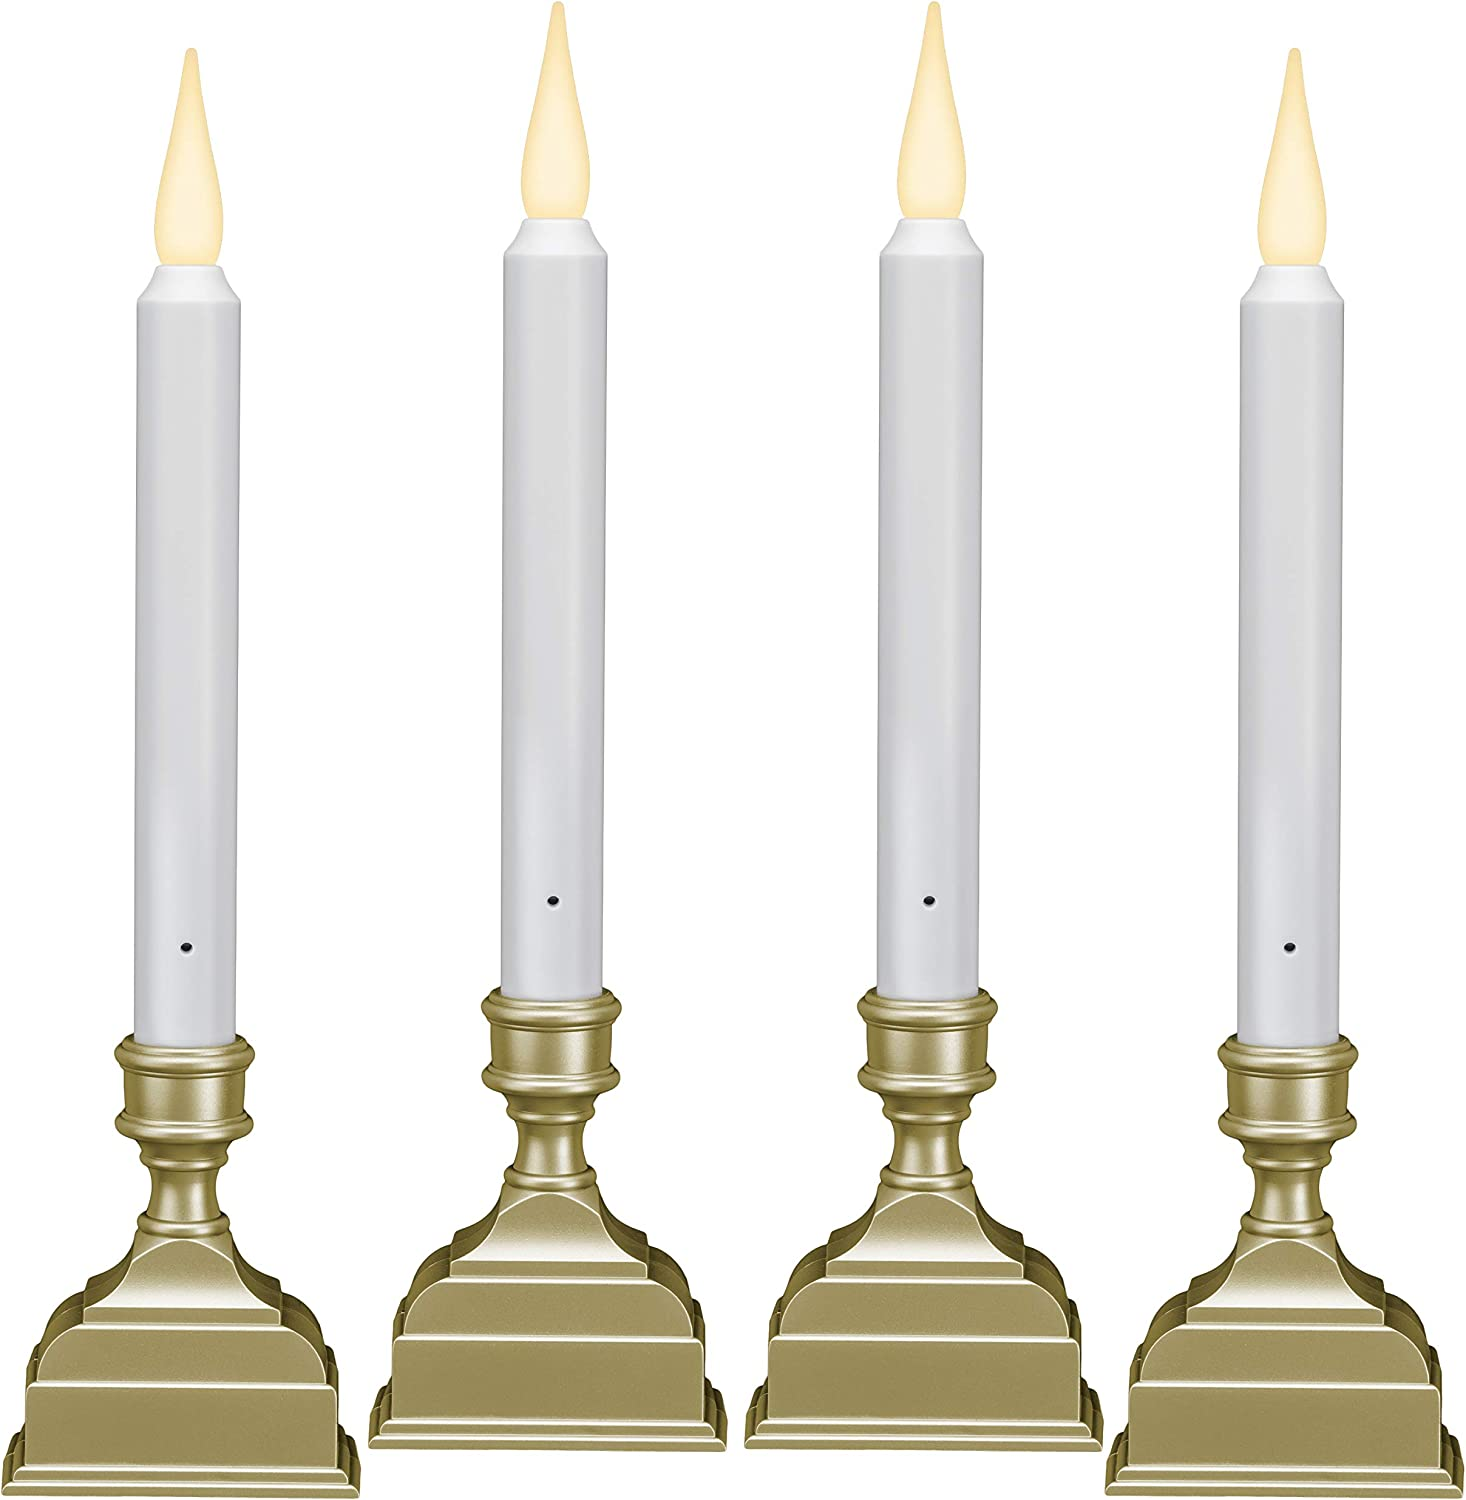 612 Vermont Battery Operated LED Window Candle with Sensor and 8 Hour Timer, Patented Dual LED Flicker Flame, VT-1620P-4 (Pack of 4, Pewter)